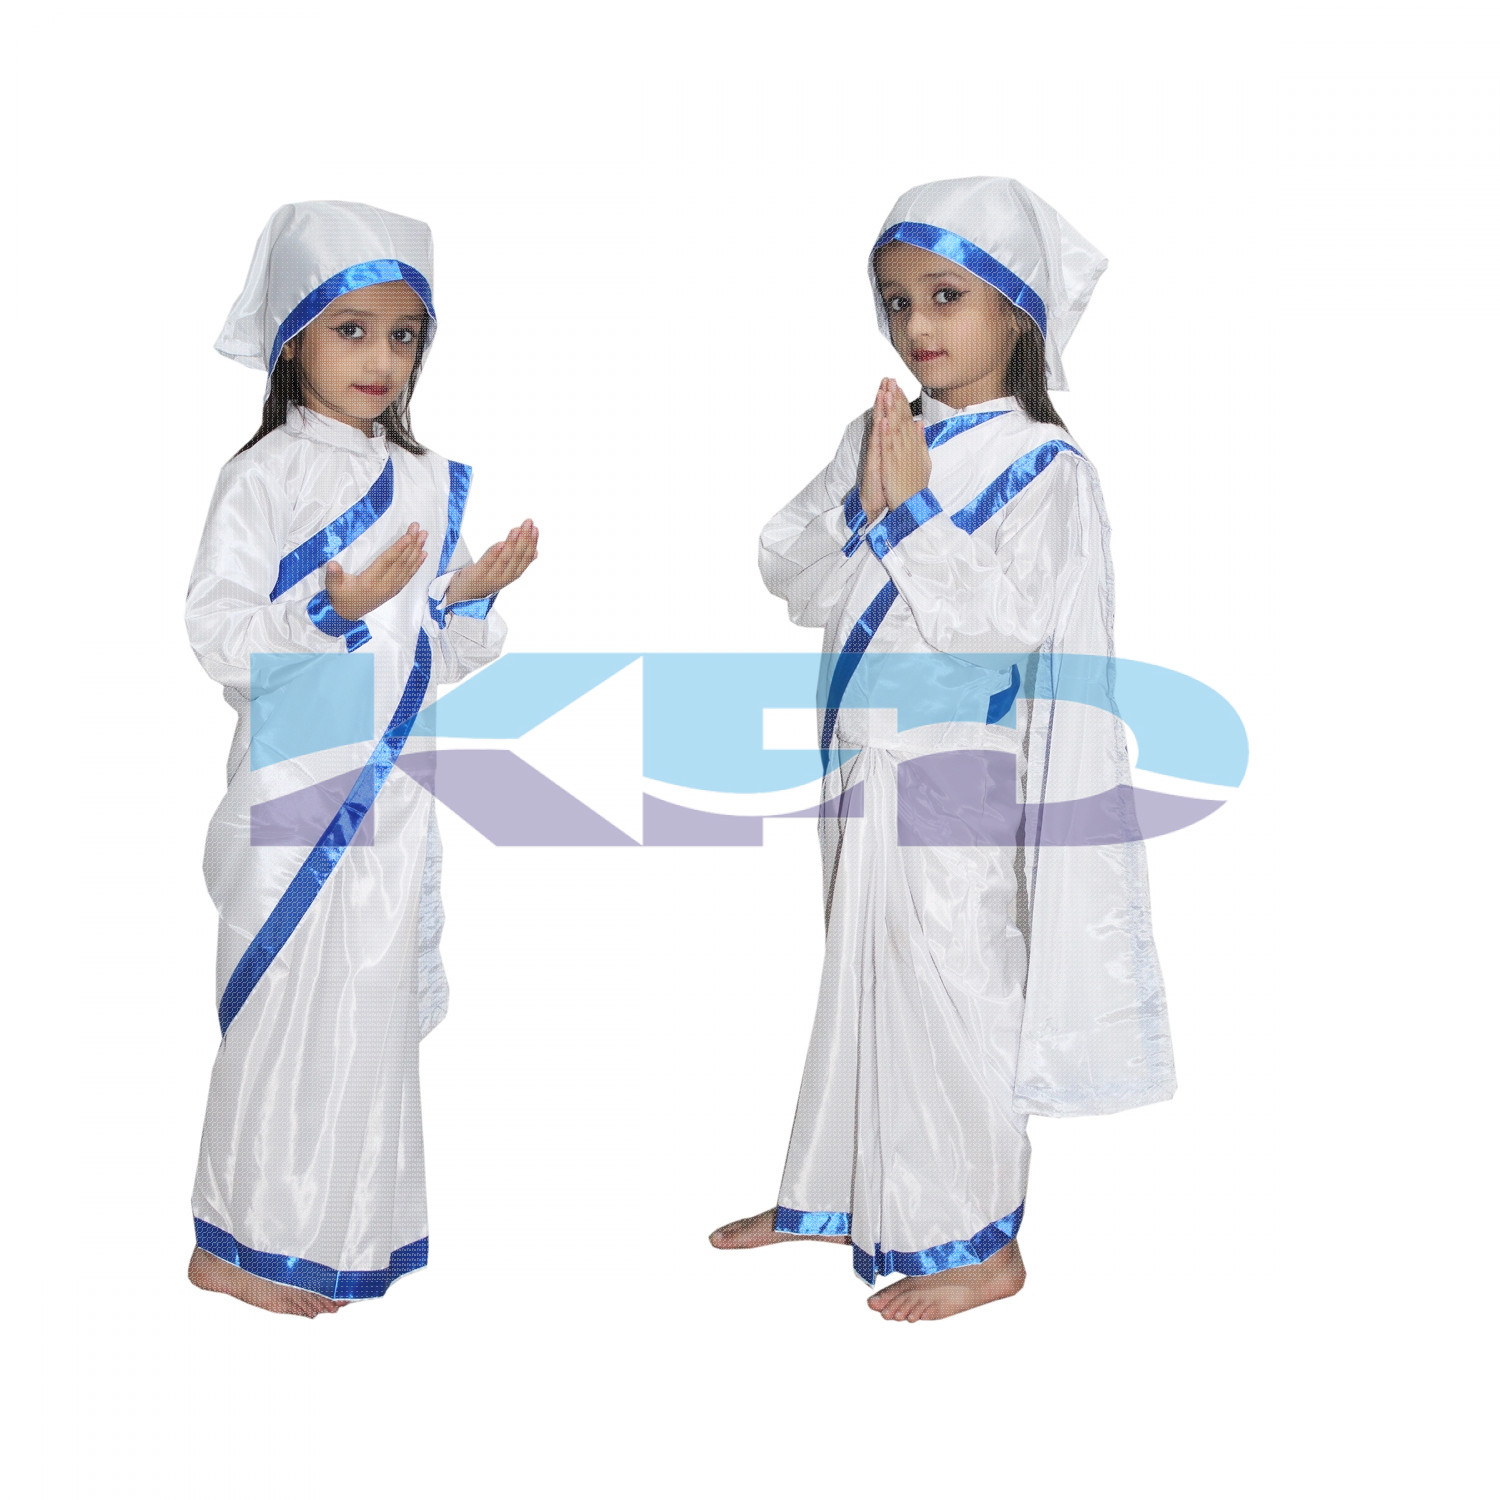 Mother Teresa fancy dress for kids,National Hero Costume for School Annual function/Theme Party/Competition/Stage Shows Dress